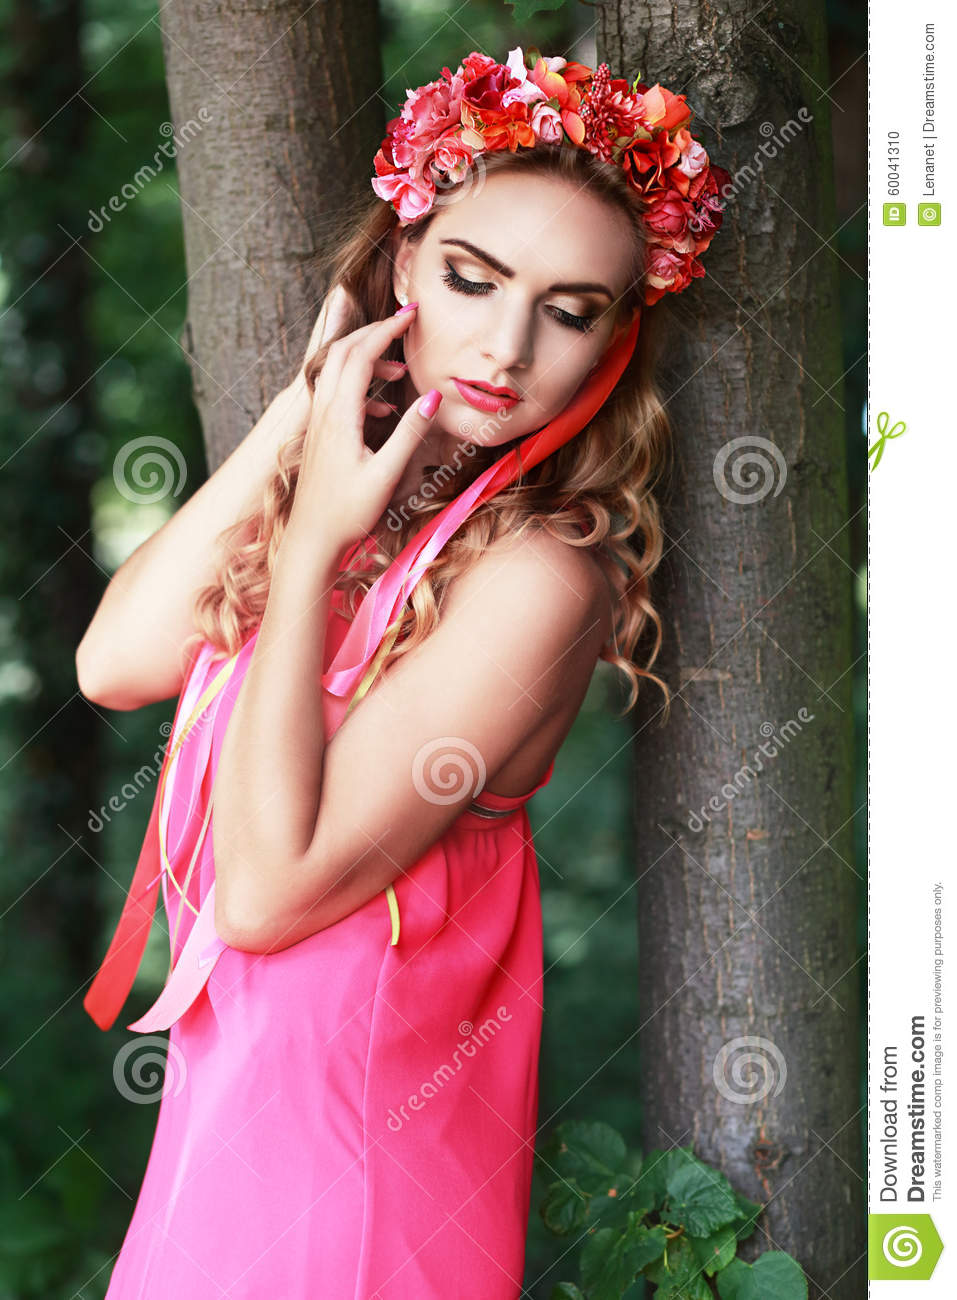 Beautiful Fairy Stock Photo Image Of Creative Female 60041310